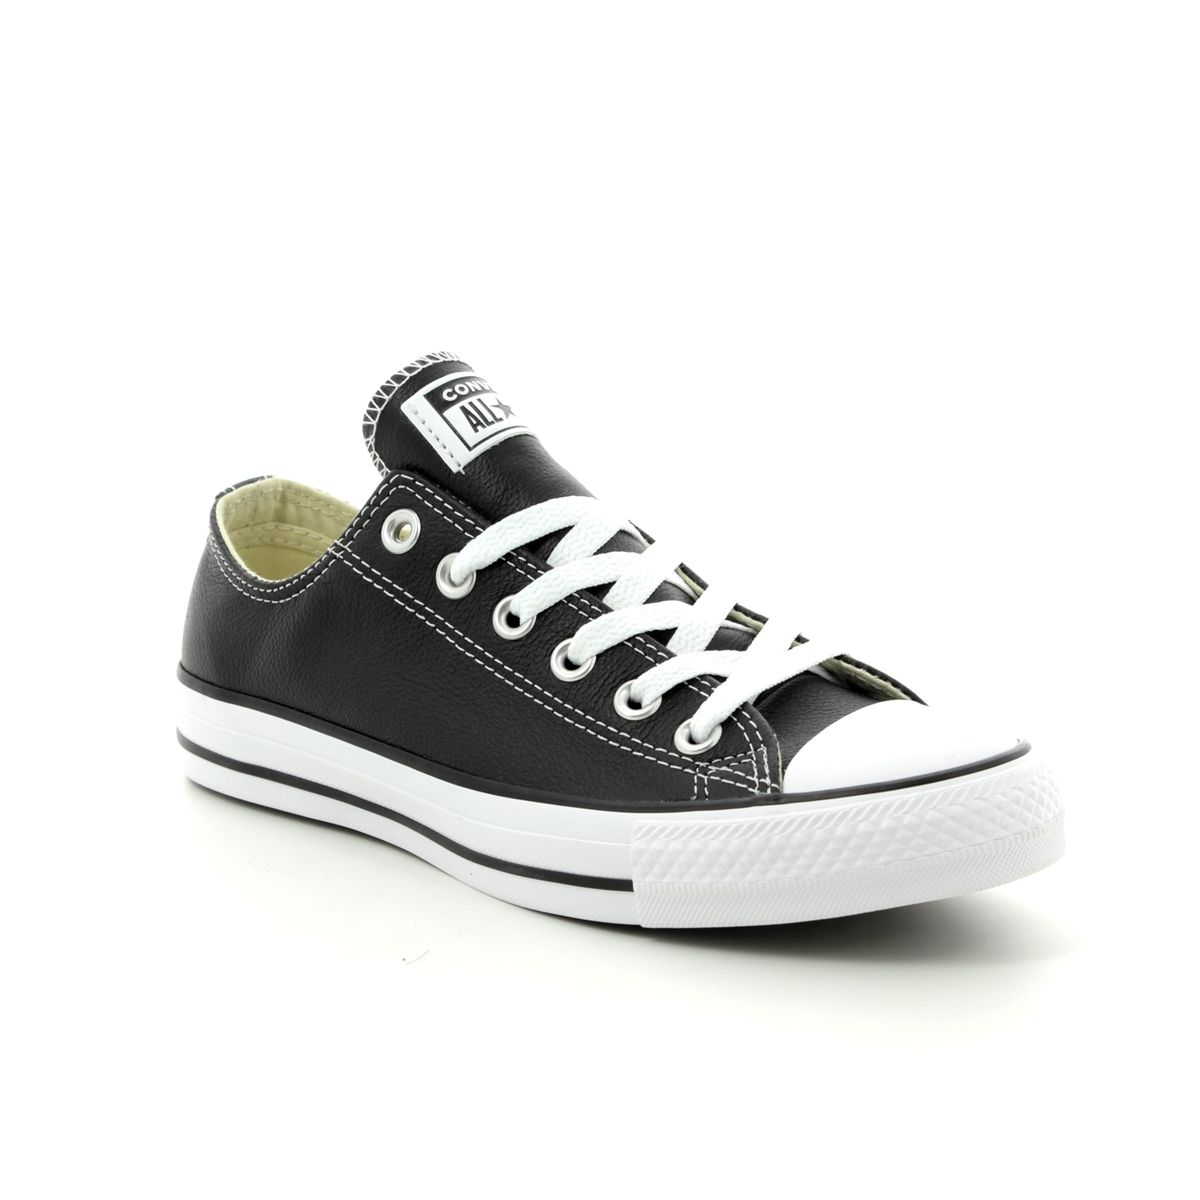 9eb2250520f48 Converse Trainers - Black leather - 132174C ALLSTAR OX Leather